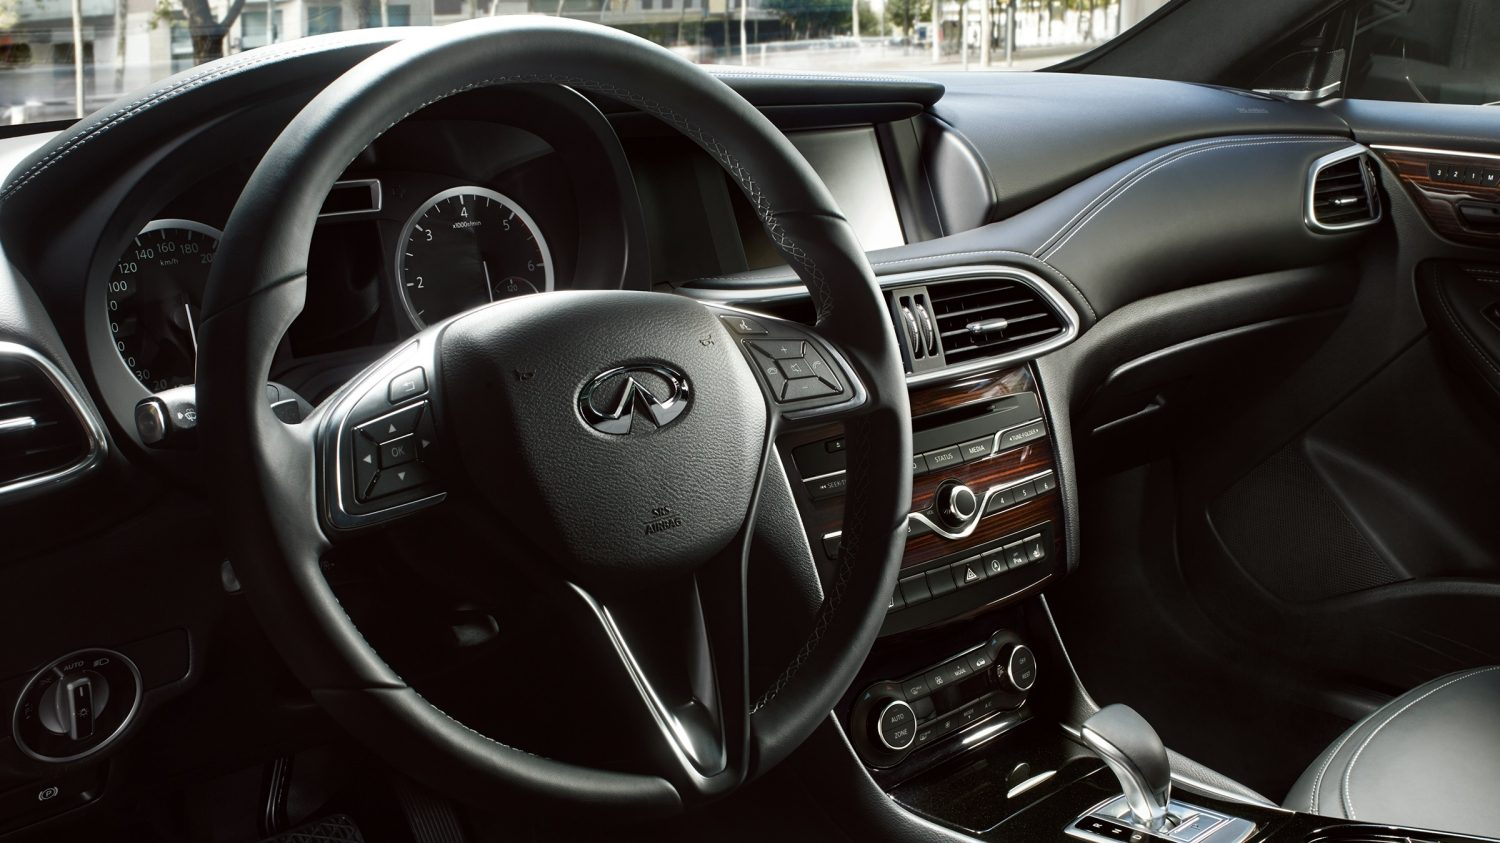 black leather steering wheel of luxury car